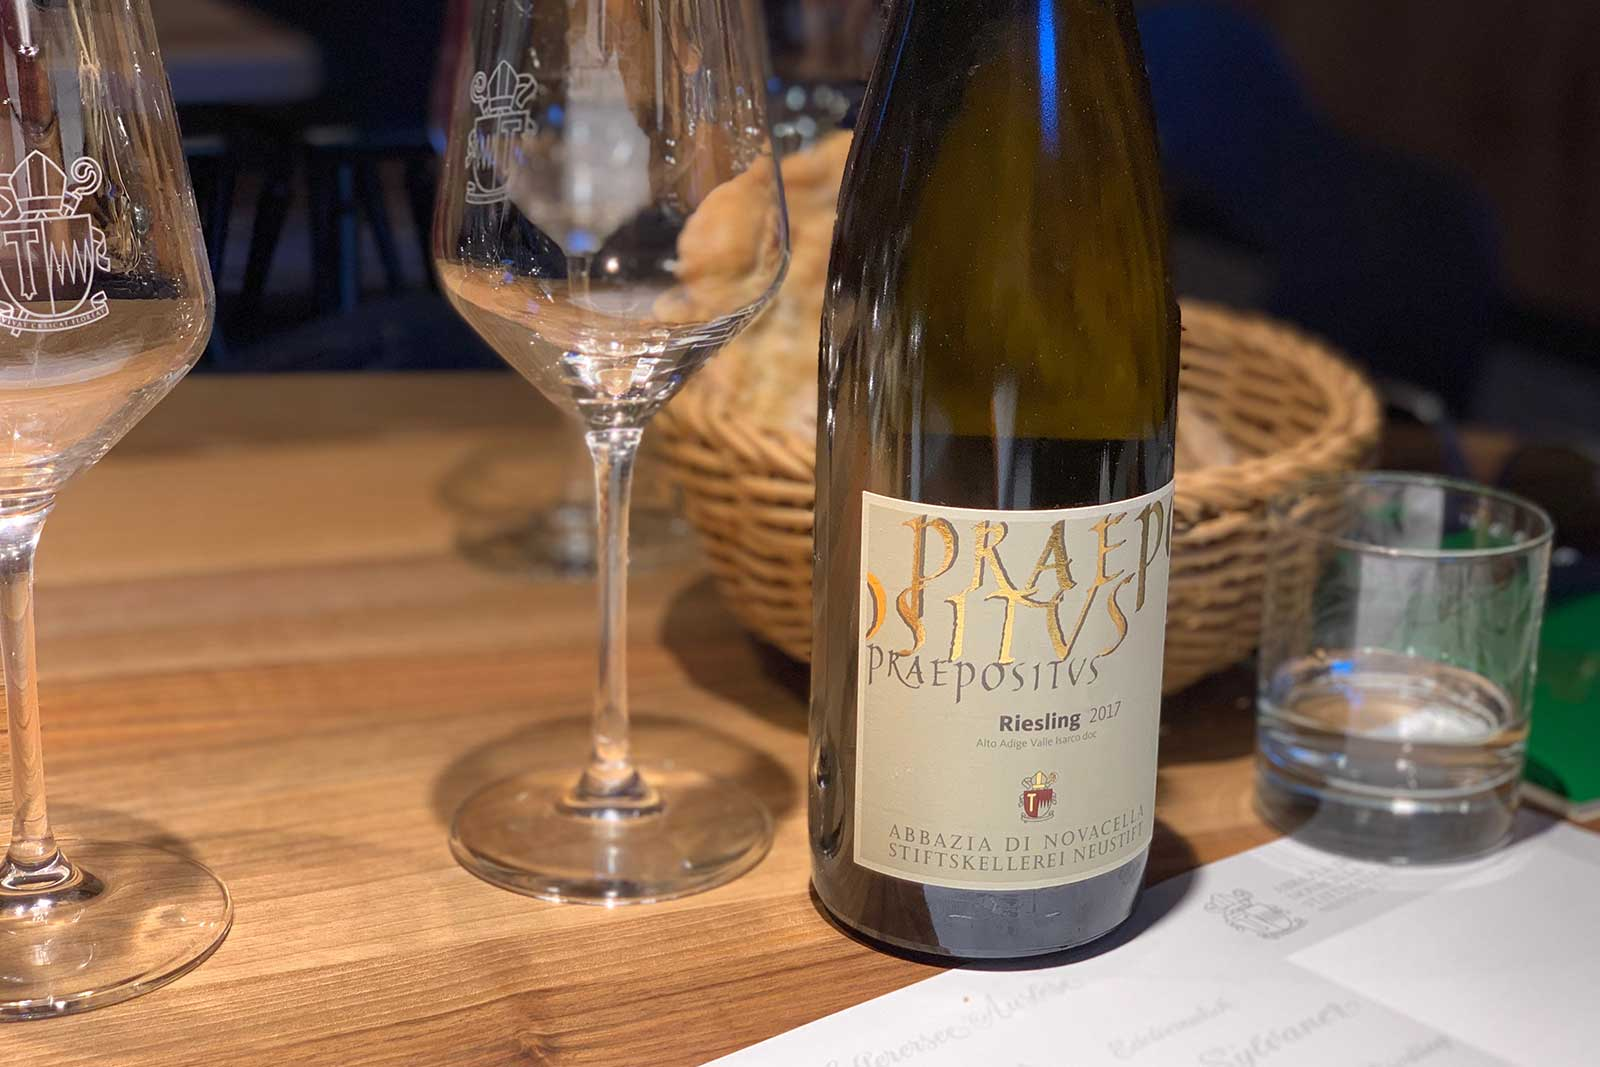 The 2017 Praepositus Riesling is a fruity, full and racy Riesling defined by peach- and hay-like aromas. ©Kevin Day/Opening a Bottle